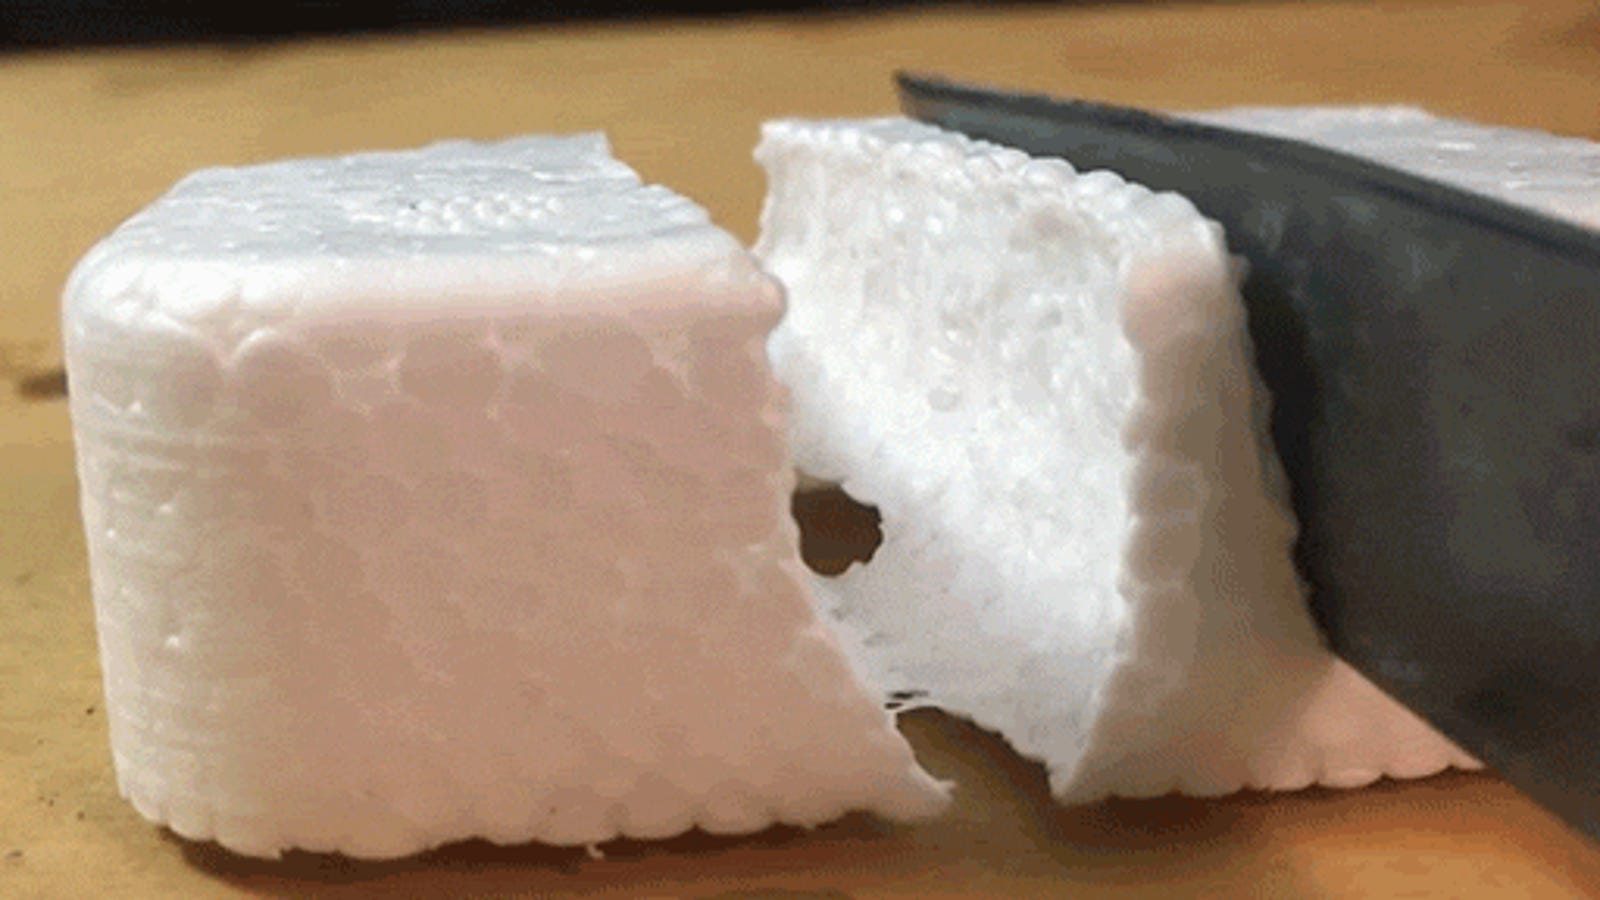 Watching a Hot Knife Cut Through Styrofoam Is Unsurprisingly Satisfying